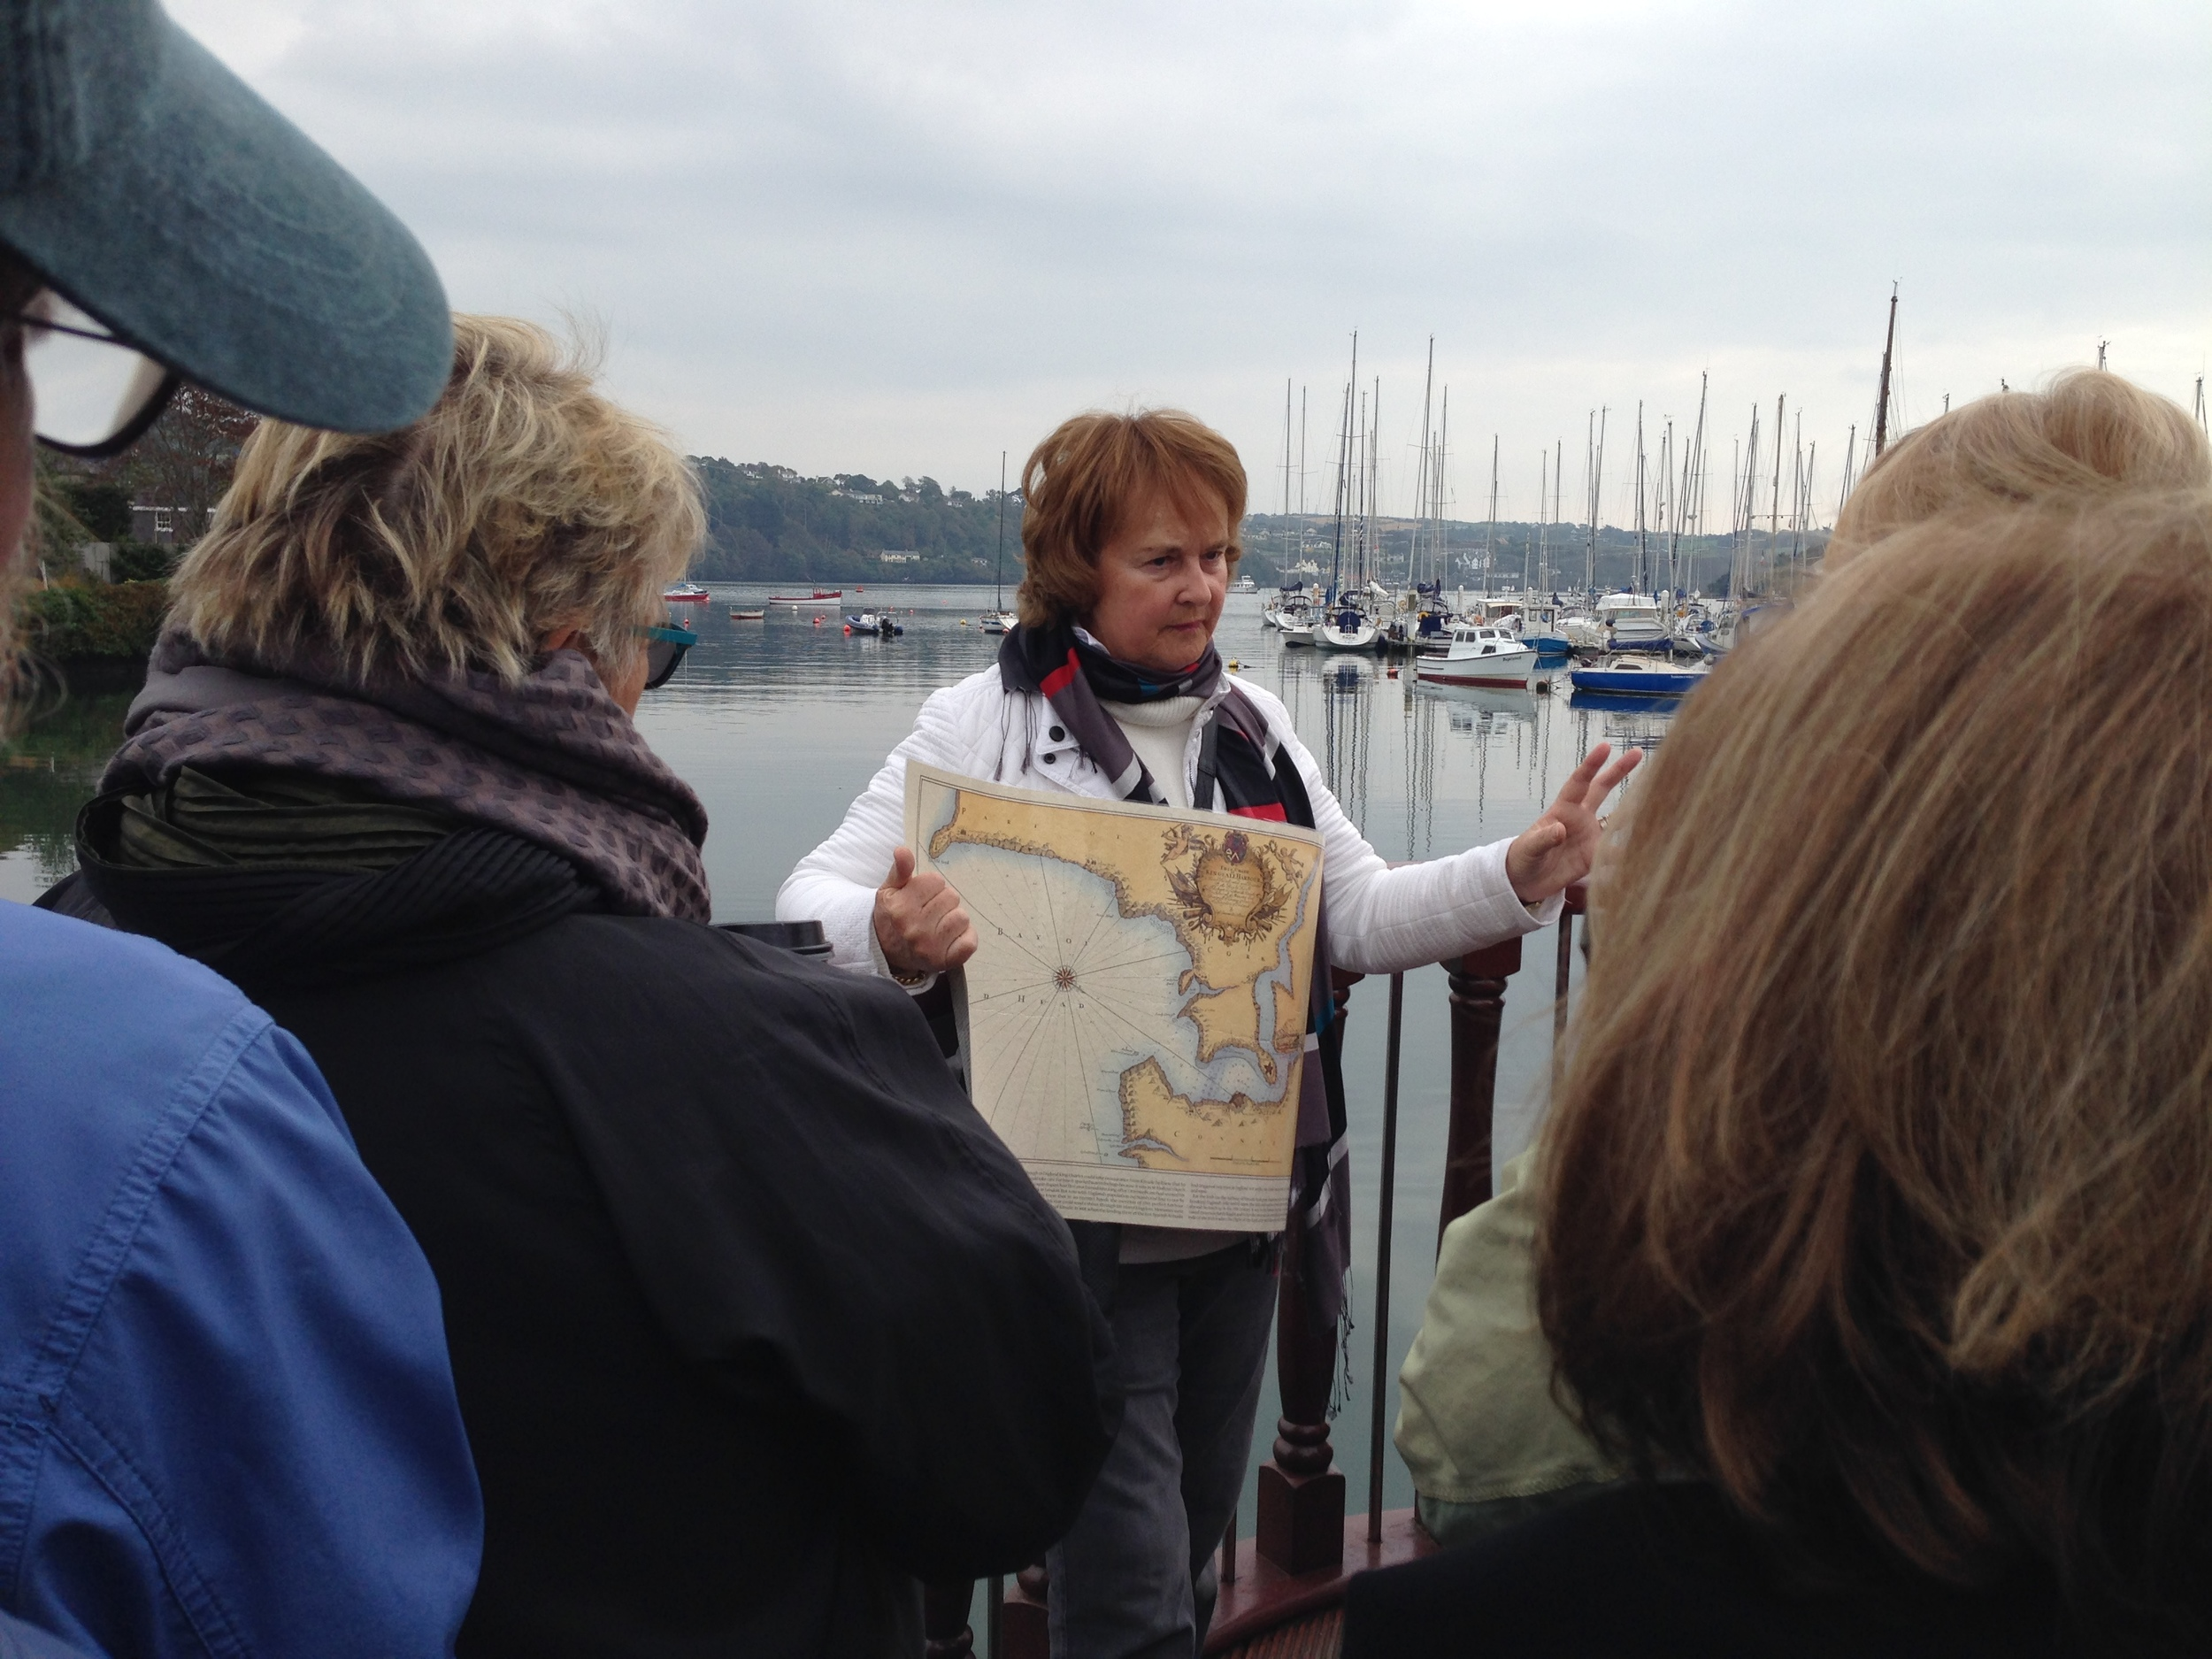 Our walking tour guide gave us a brief rundown on the rich history of this seaside town.